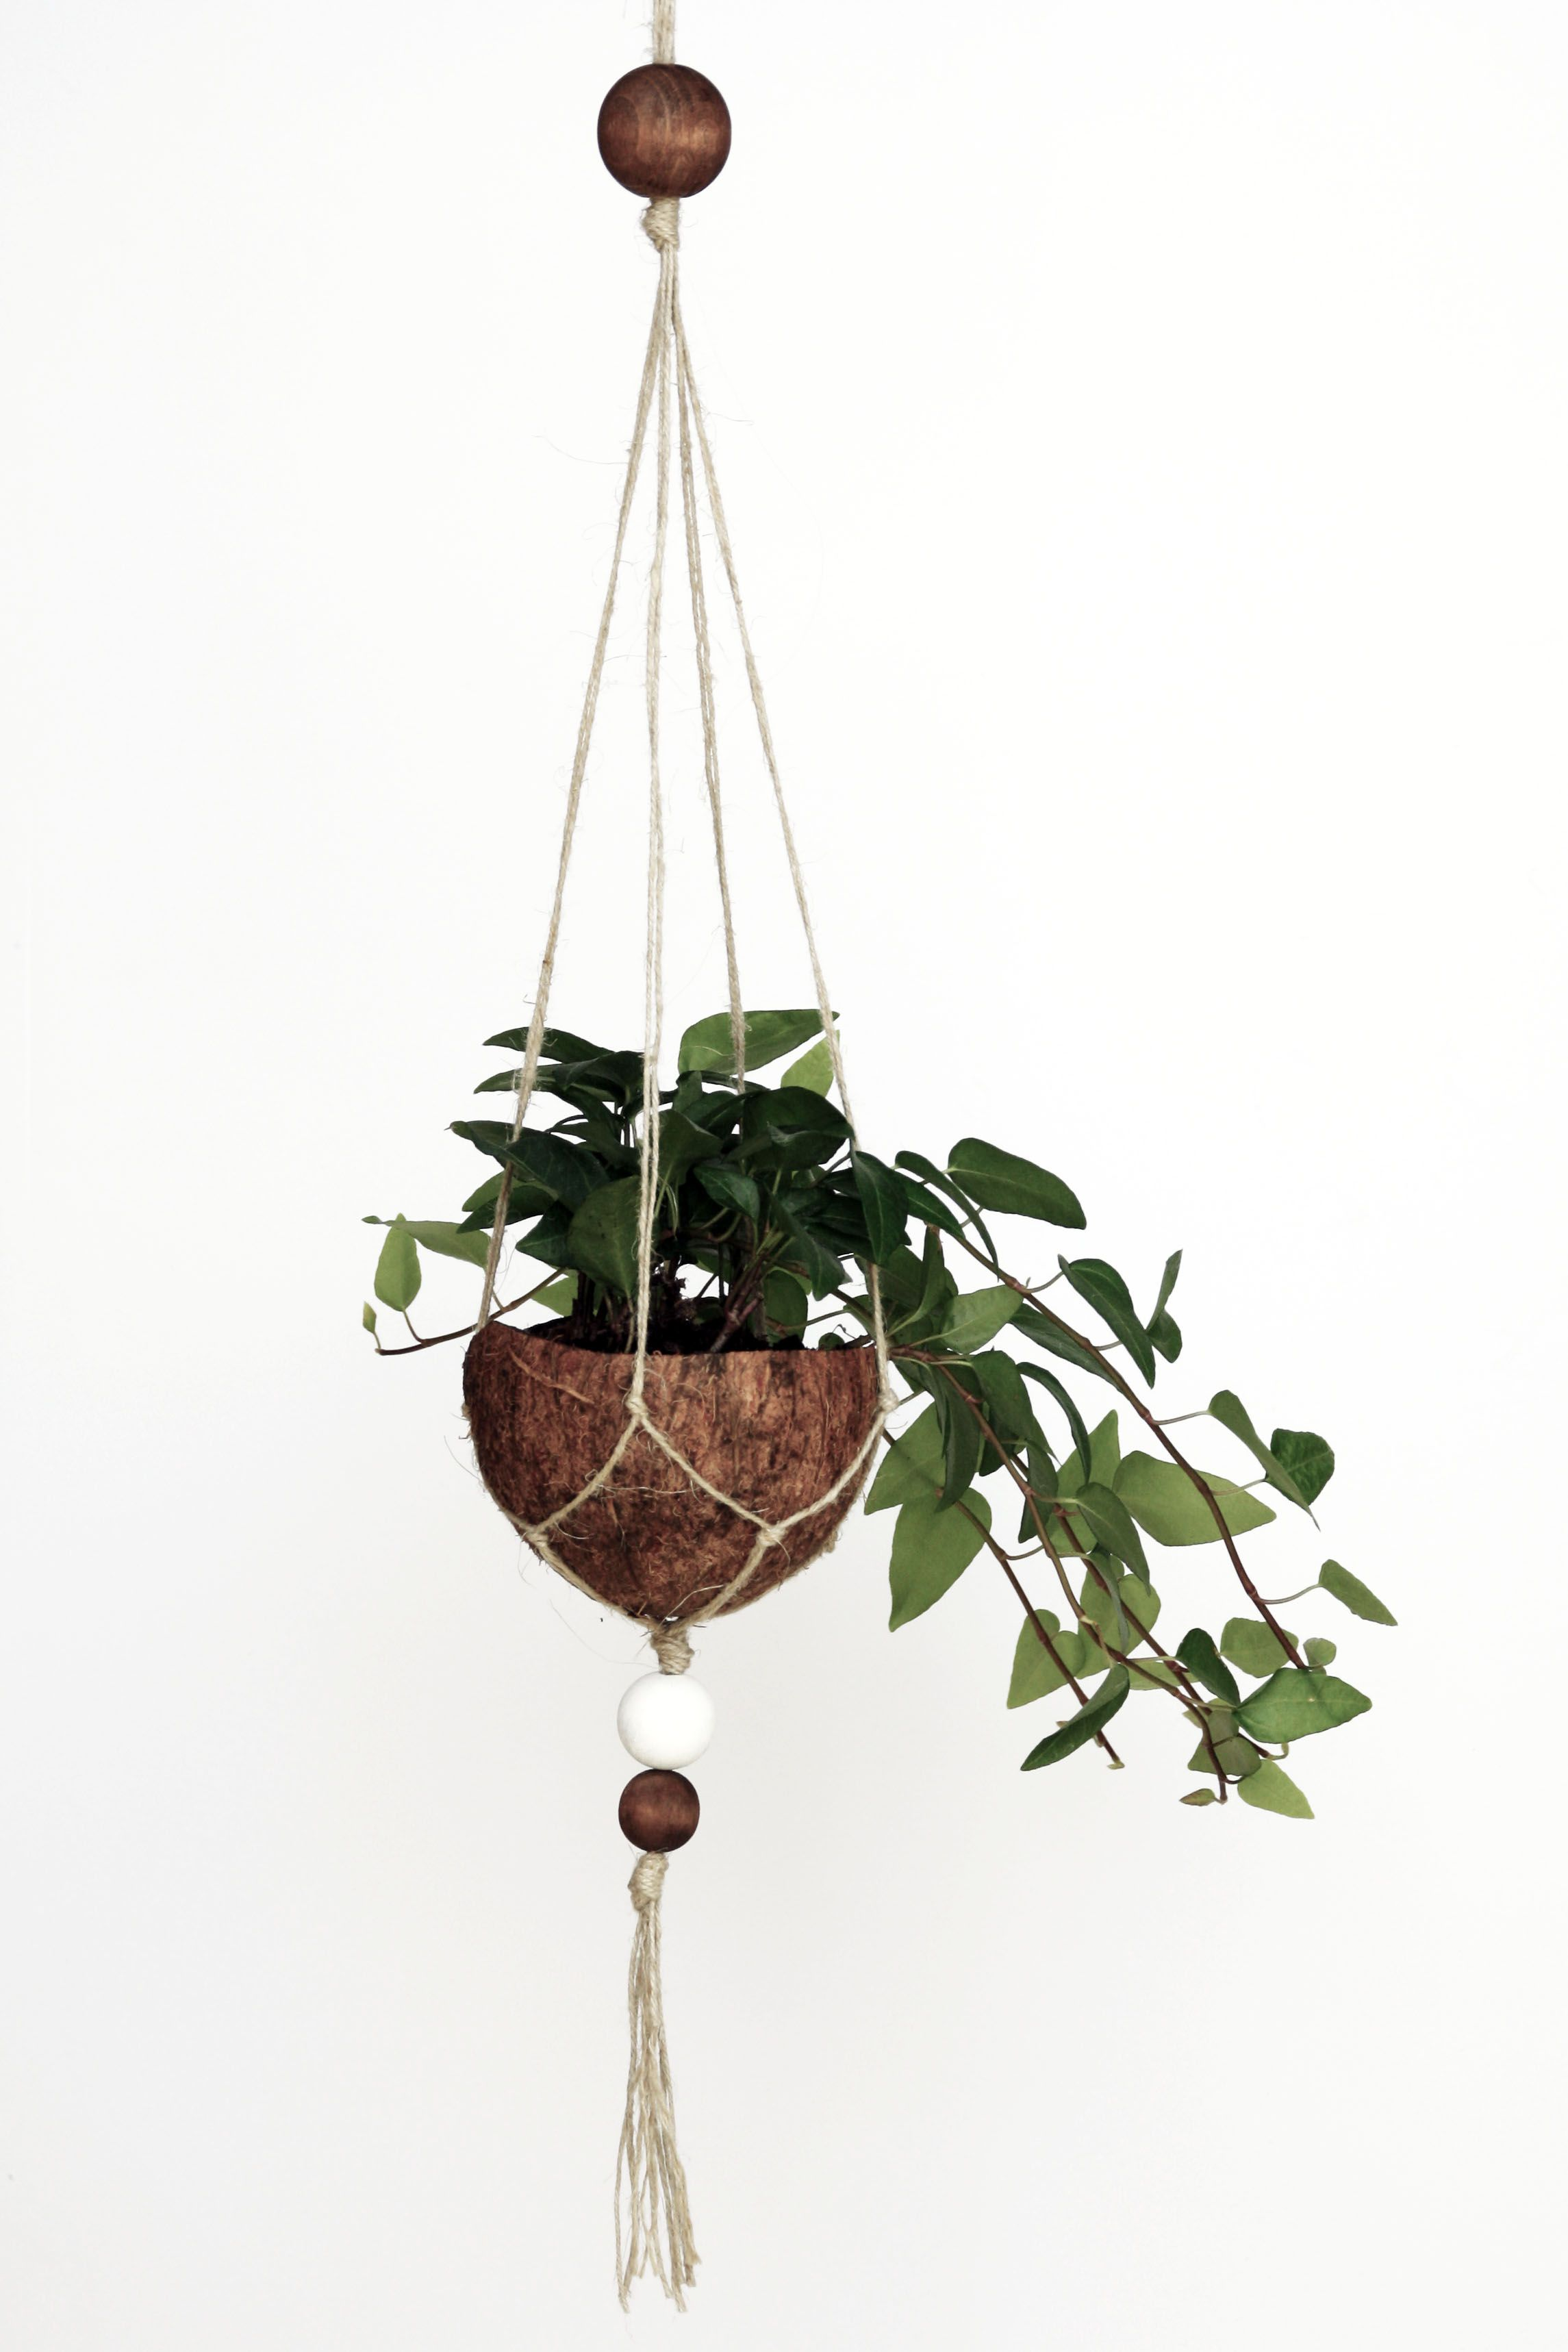 DIY Upcycling Kokosnuss Blumenampel | Coconut Makramee Hanging Basket | Pflanzen | plants | do. it yourself | deko | basteln | urban Jungle bloggers | Zimmerpflanzen | Anleitung Idee Tutorial kreativ | handmade | coconut | plant pot | Blumentopf | grüner Wohnen